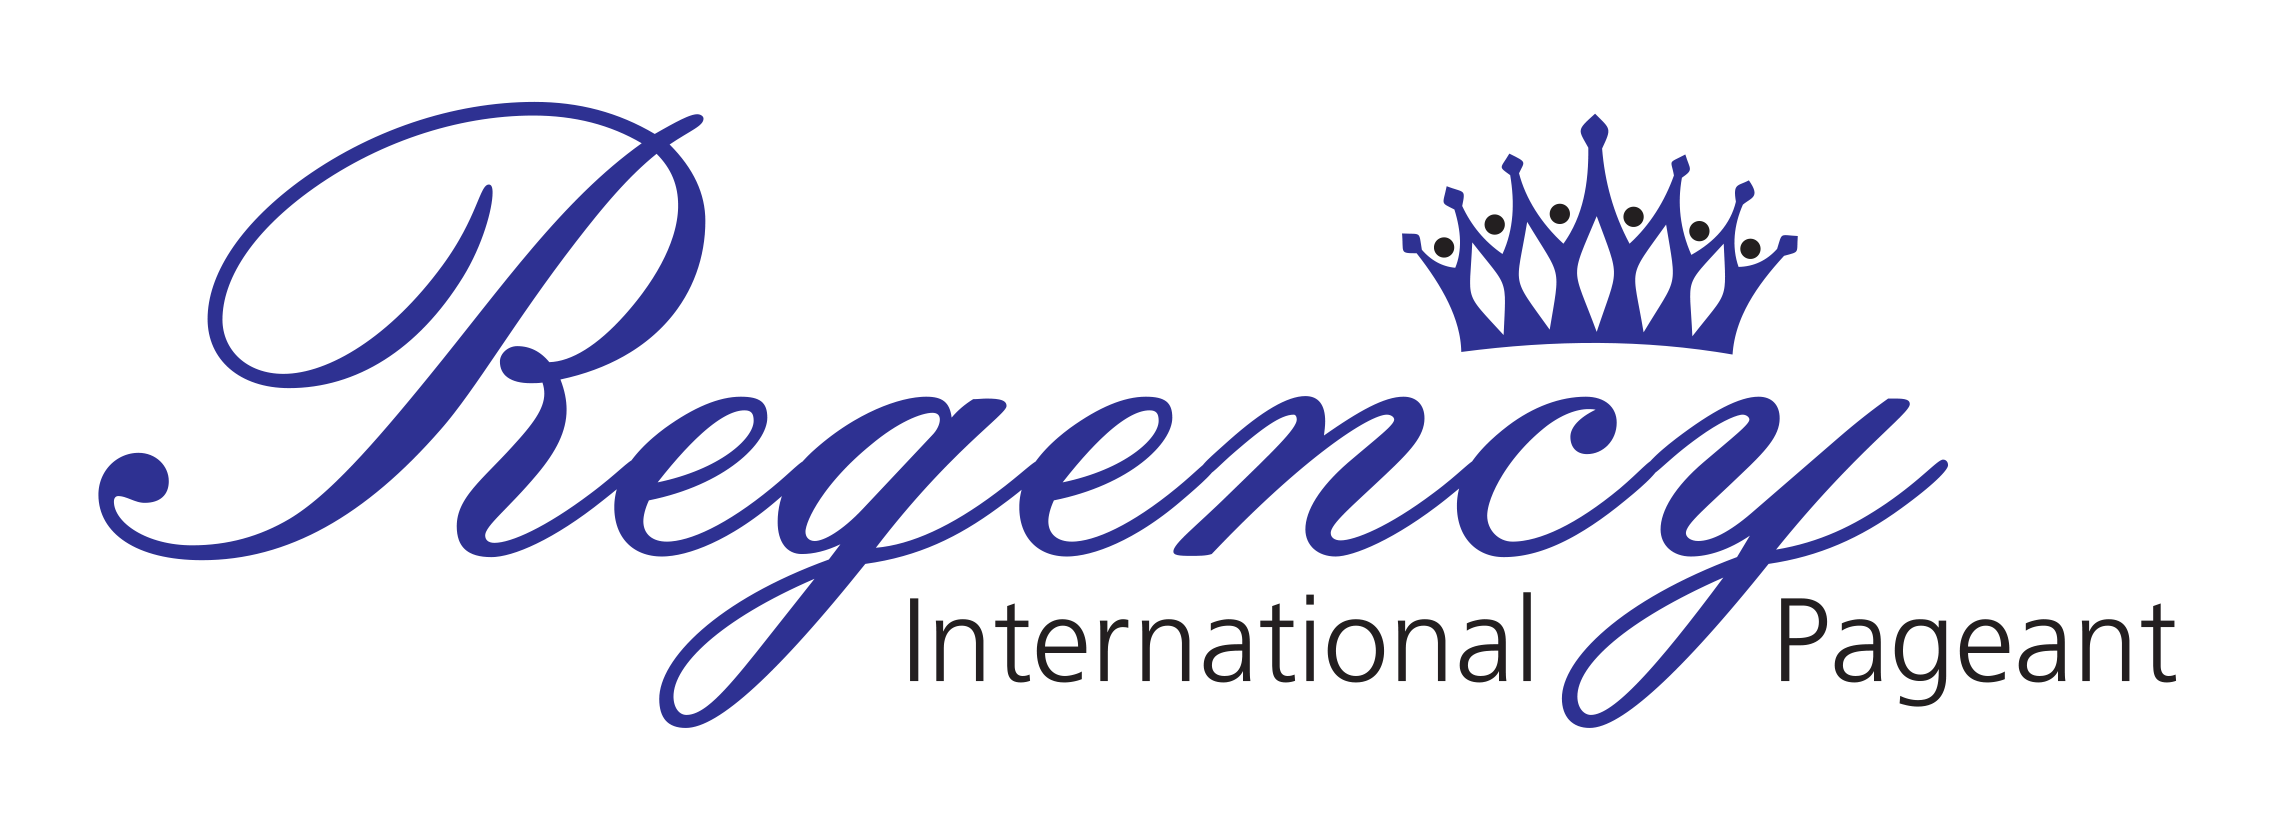 Privacy Policy - Regency International Pageant